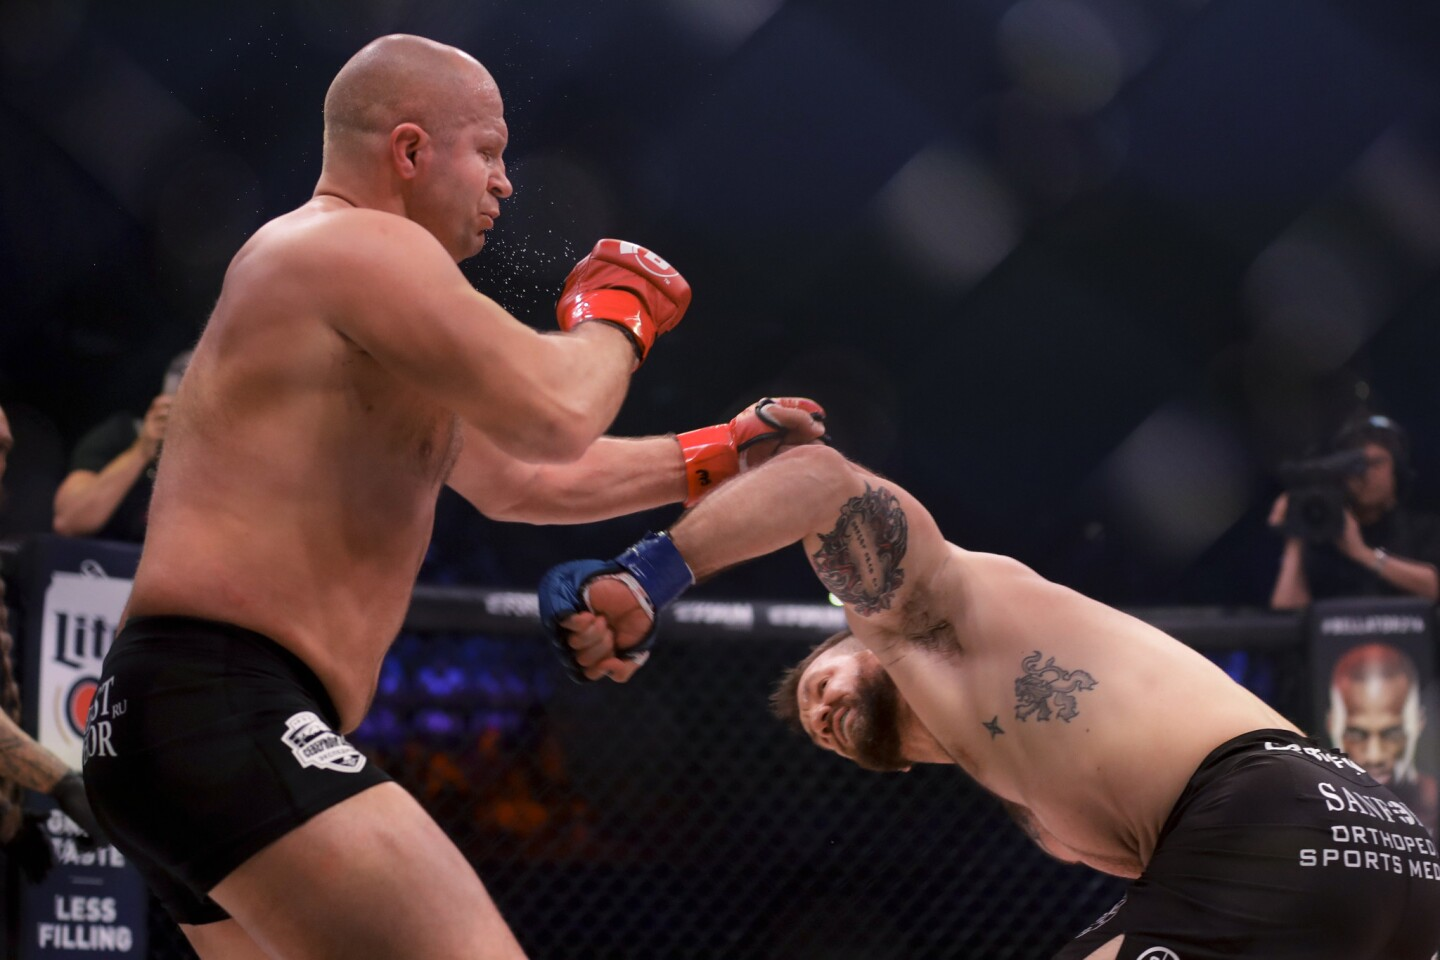 Ryan Bader, right, knocks out Fedora Emelianenko during their mixed martial arts heavyweight world title bout at Bellator 214 on Saturday, Jan. 26, 2019, in Inglewood, Calif. (AP Photo/Chris Carlson)